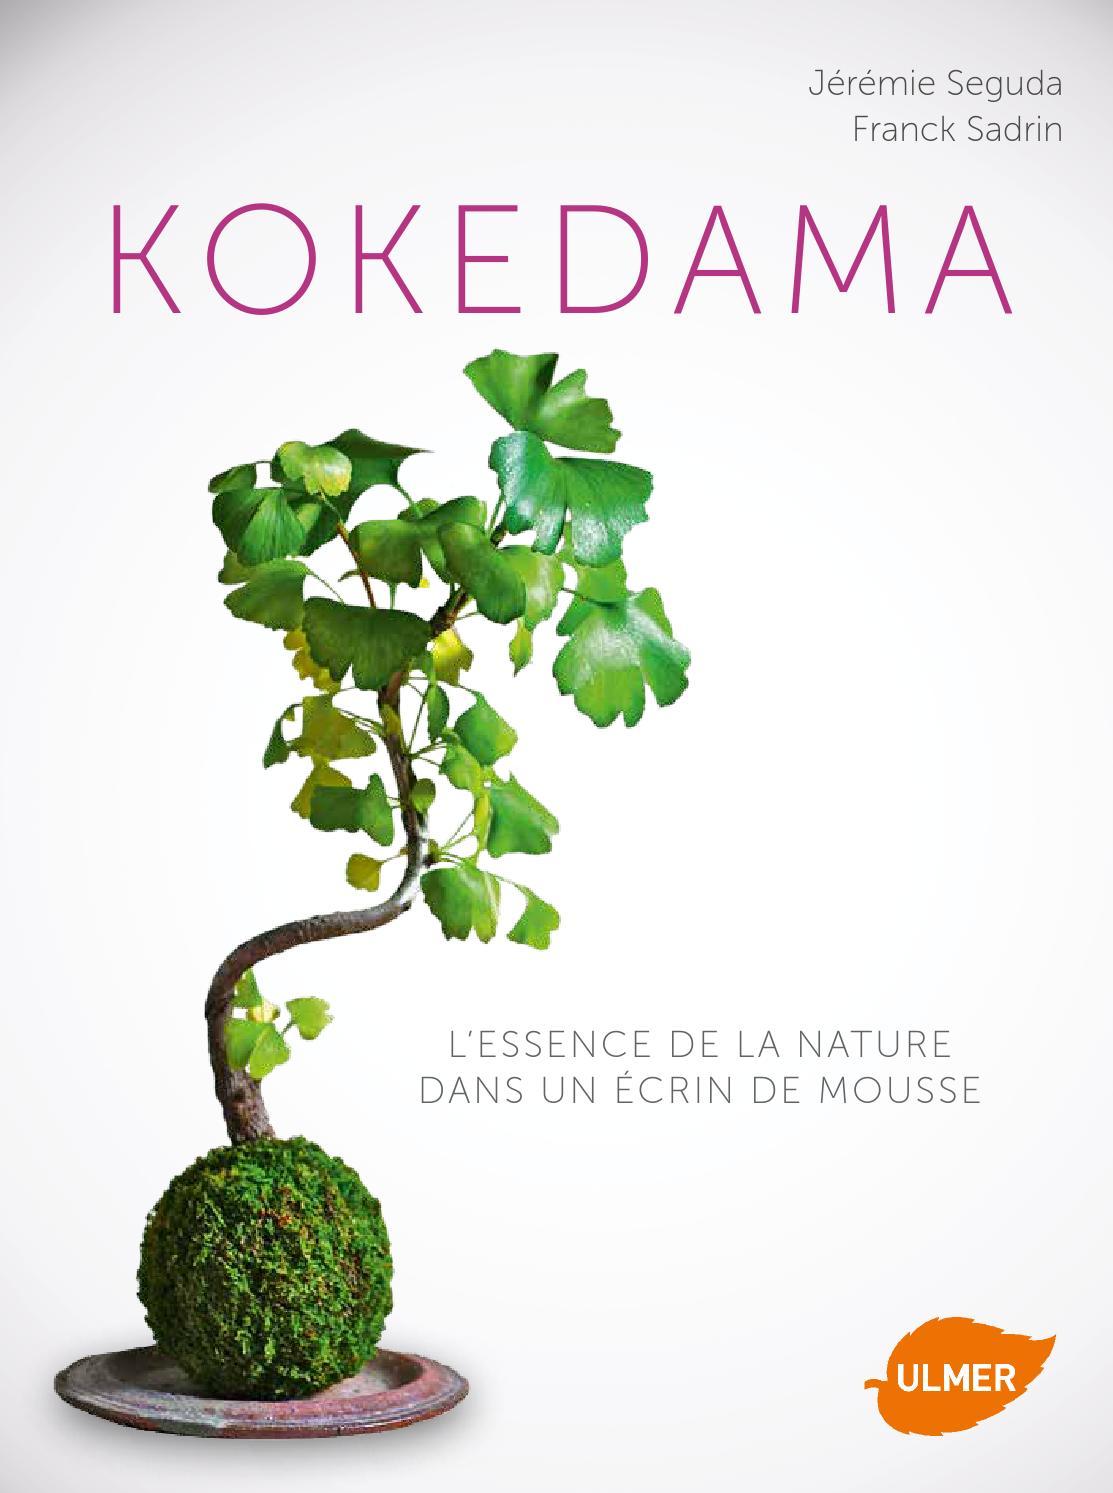 extrait kokedama ditions ulmer by ditions ulmer issuu. Black Bedroom Furniture Sets. Home Design Ideas